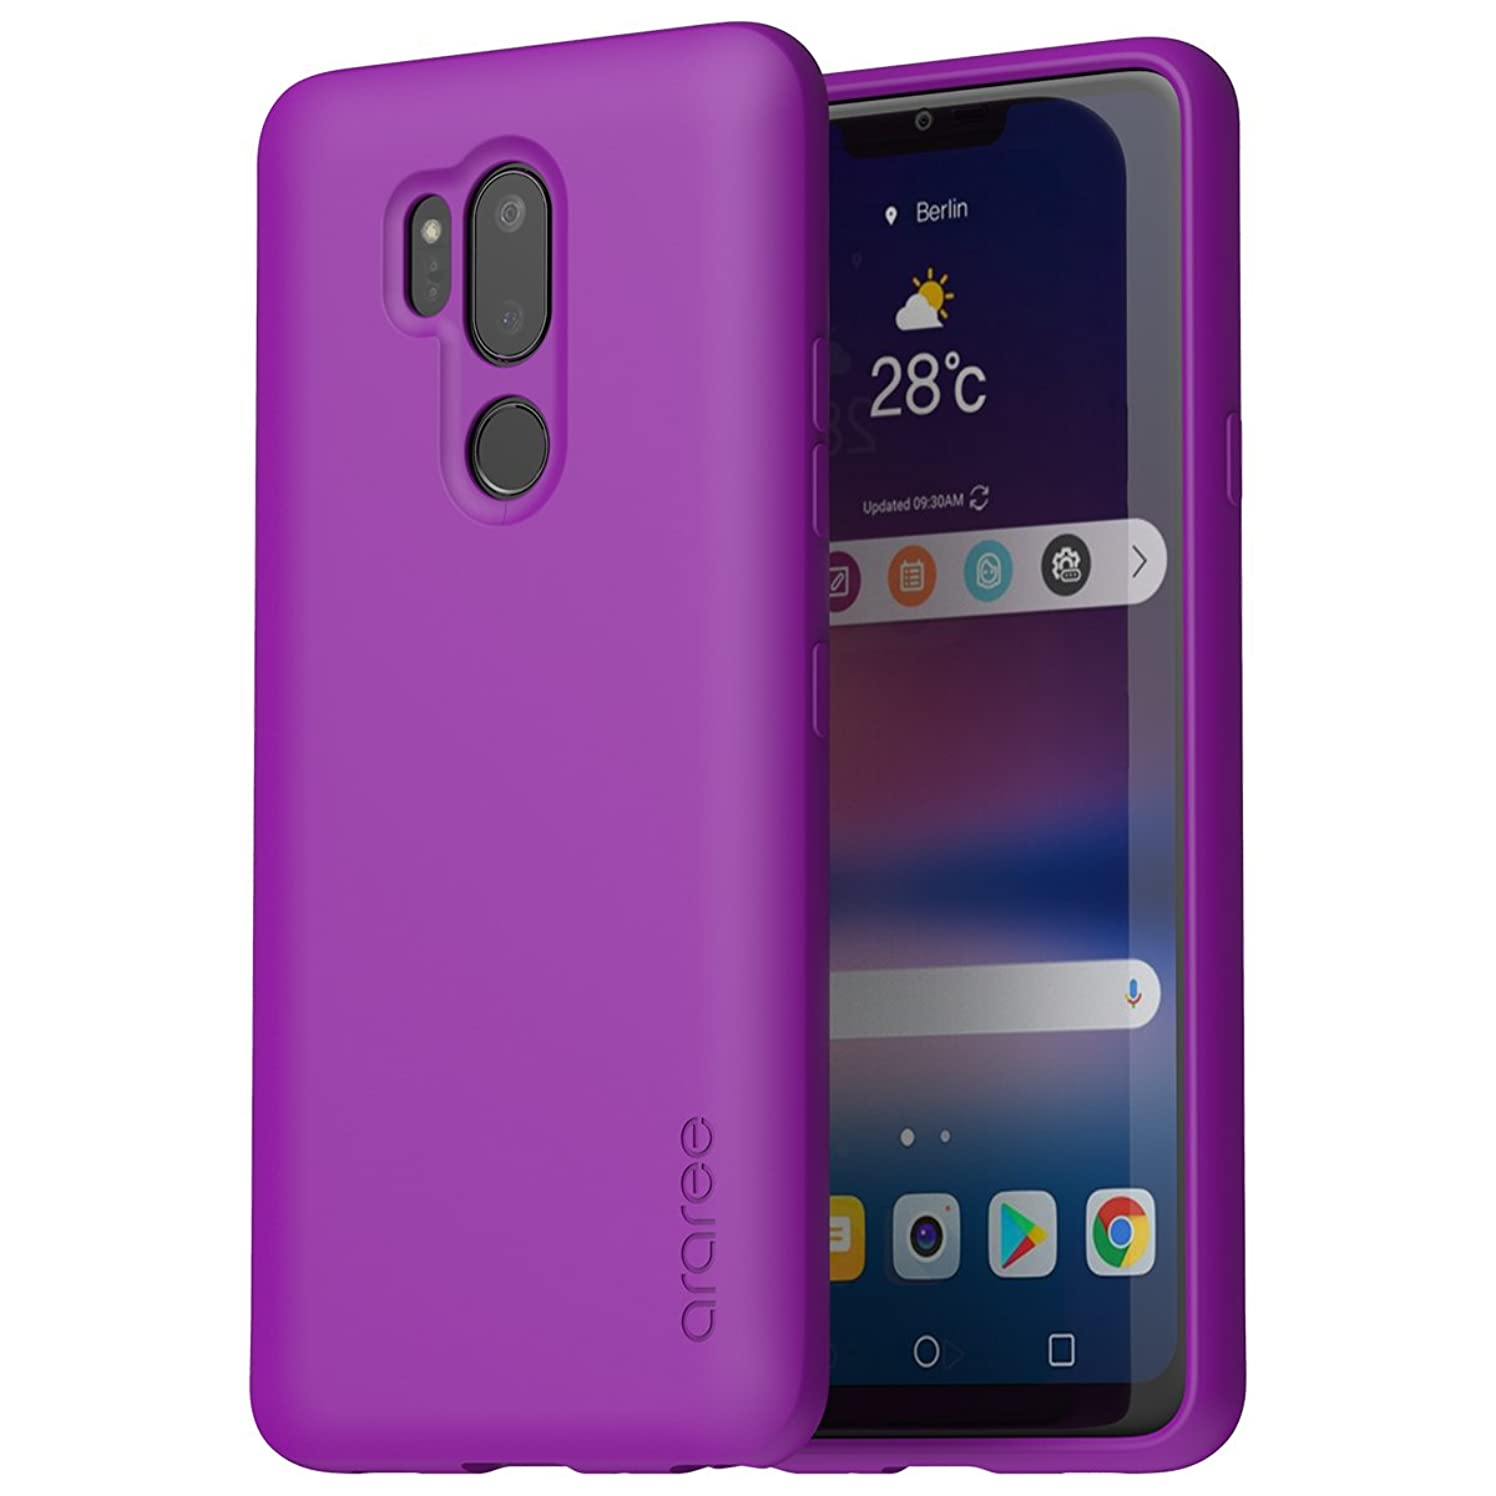 araree [G Cover] LG G7 ThinQ Case, Ultra Slim Soft Flexible TPU Scratch Resistant Shockproof case for LG G7 ThinQ (2018) - Purple